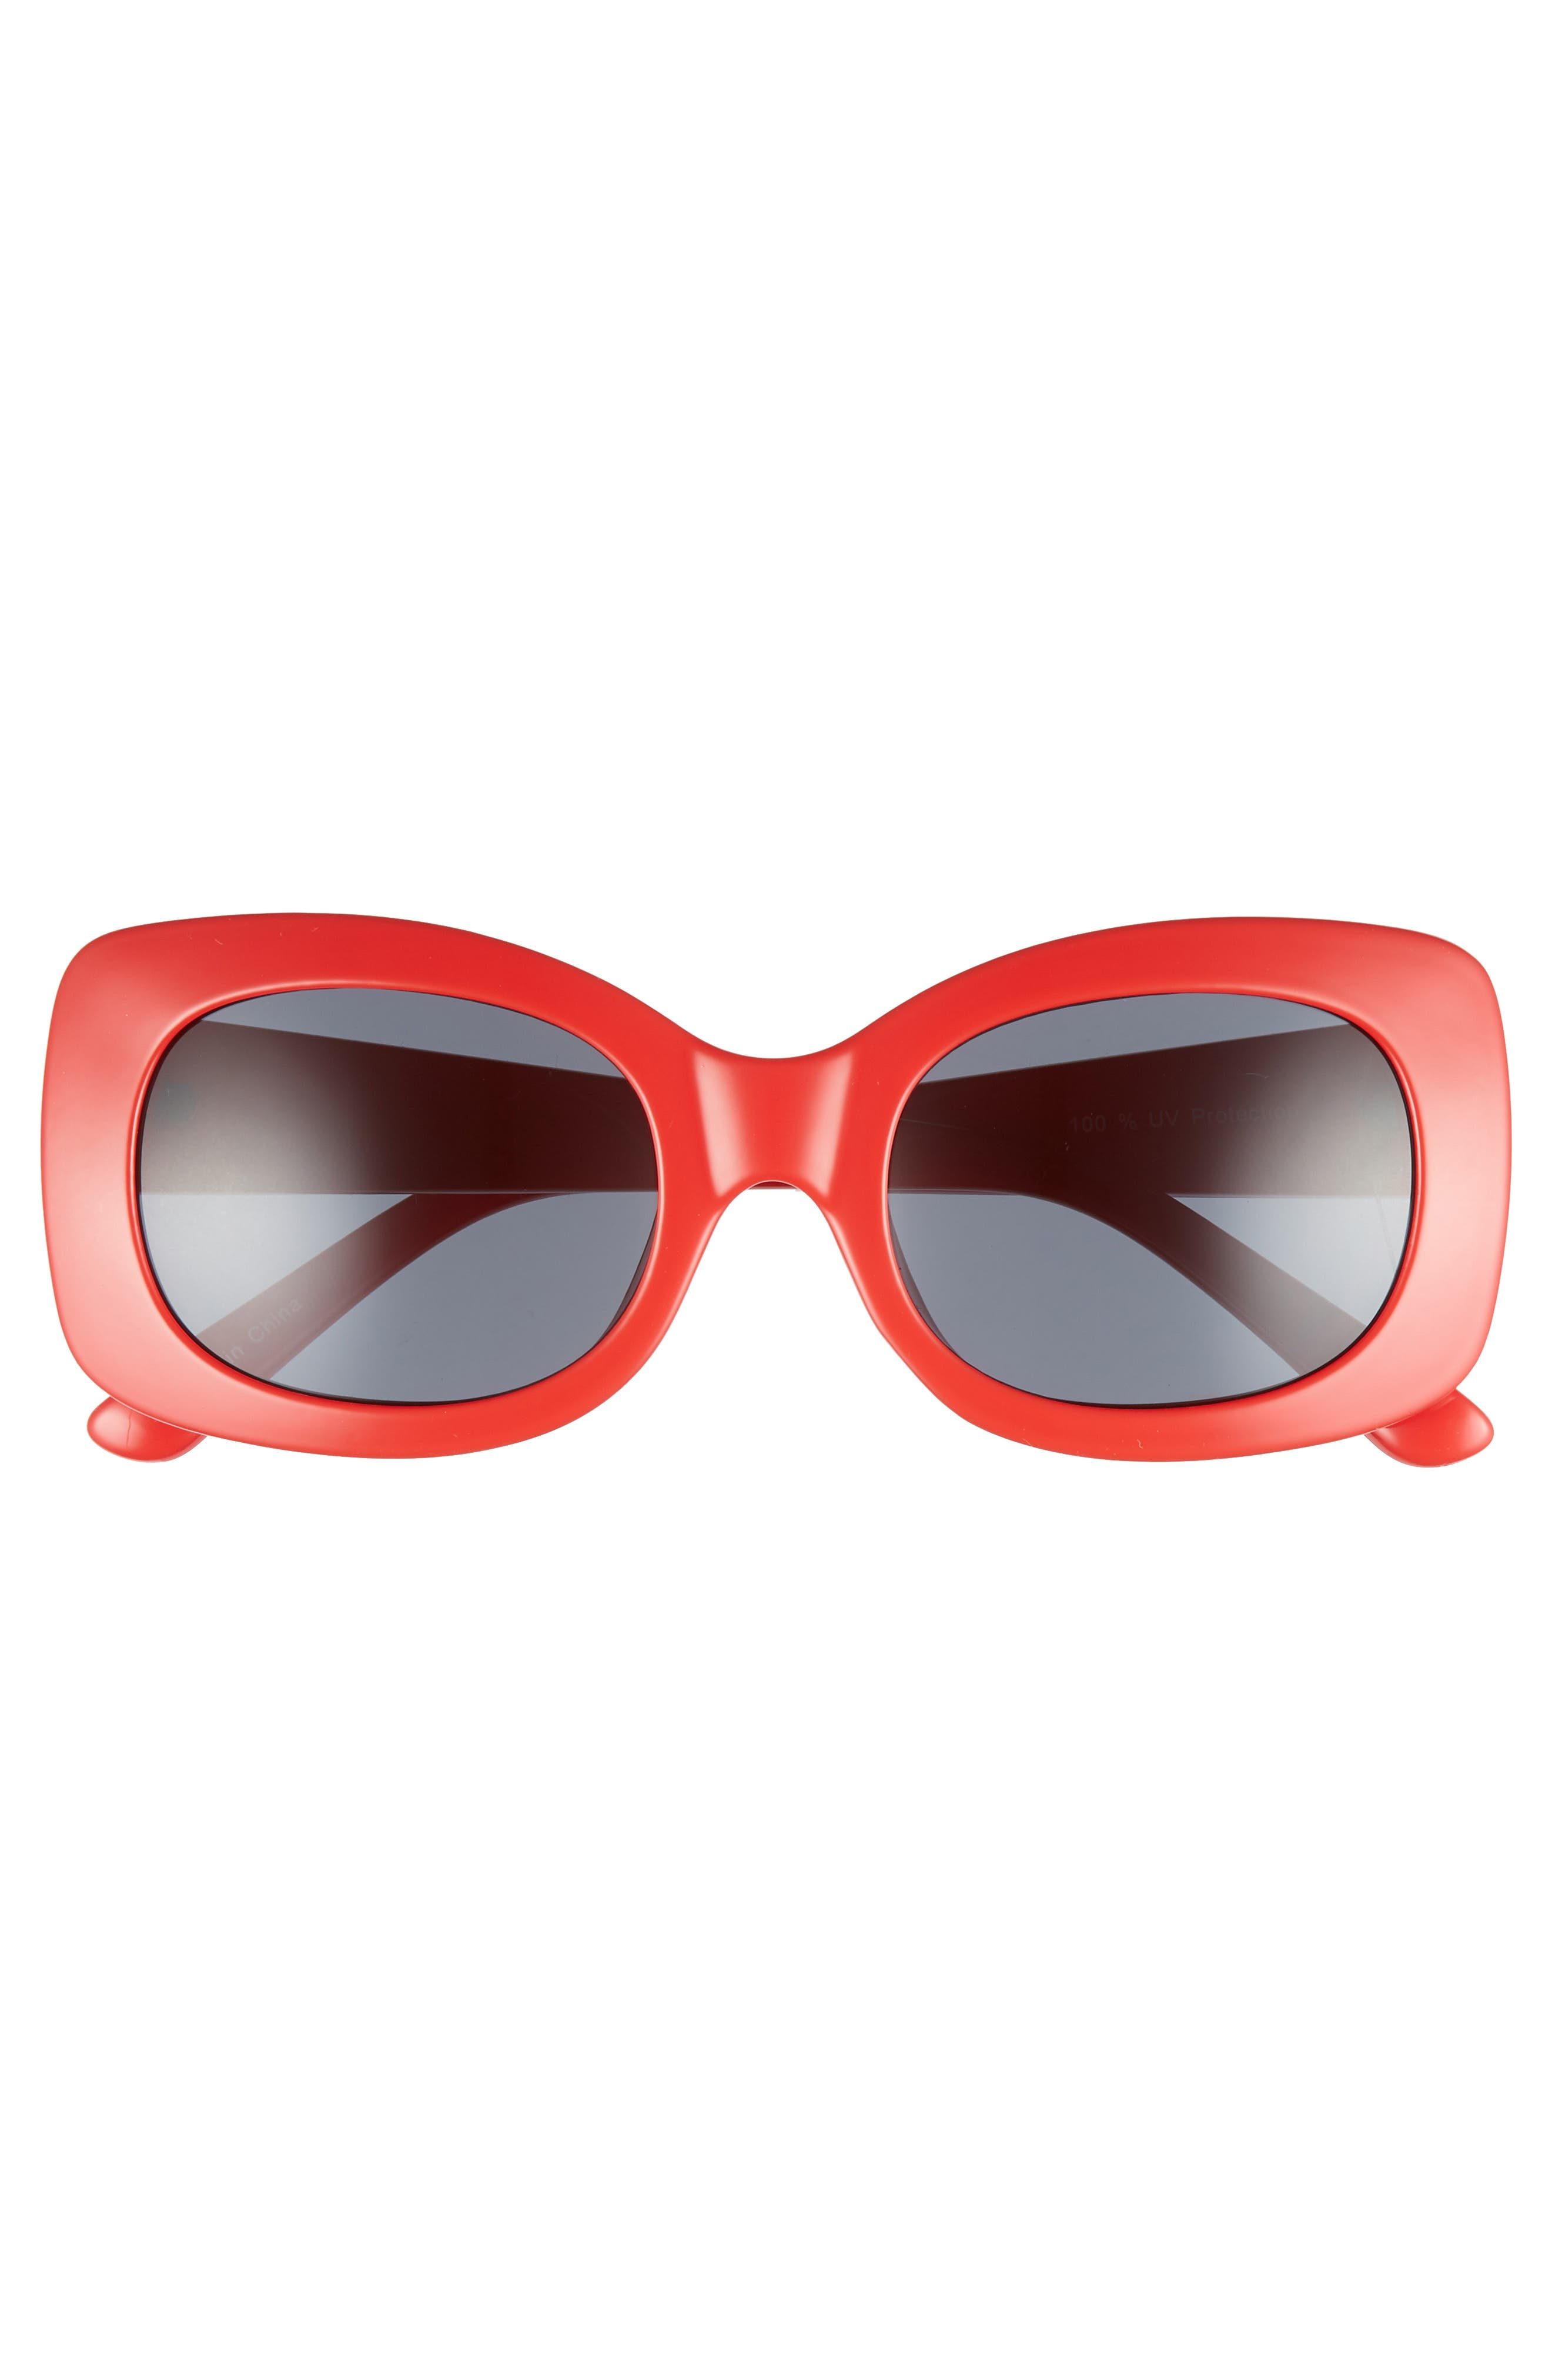 51mm Square Sunglasses,                             Alternate thumbnail 3, color,                             RED/ BLACK